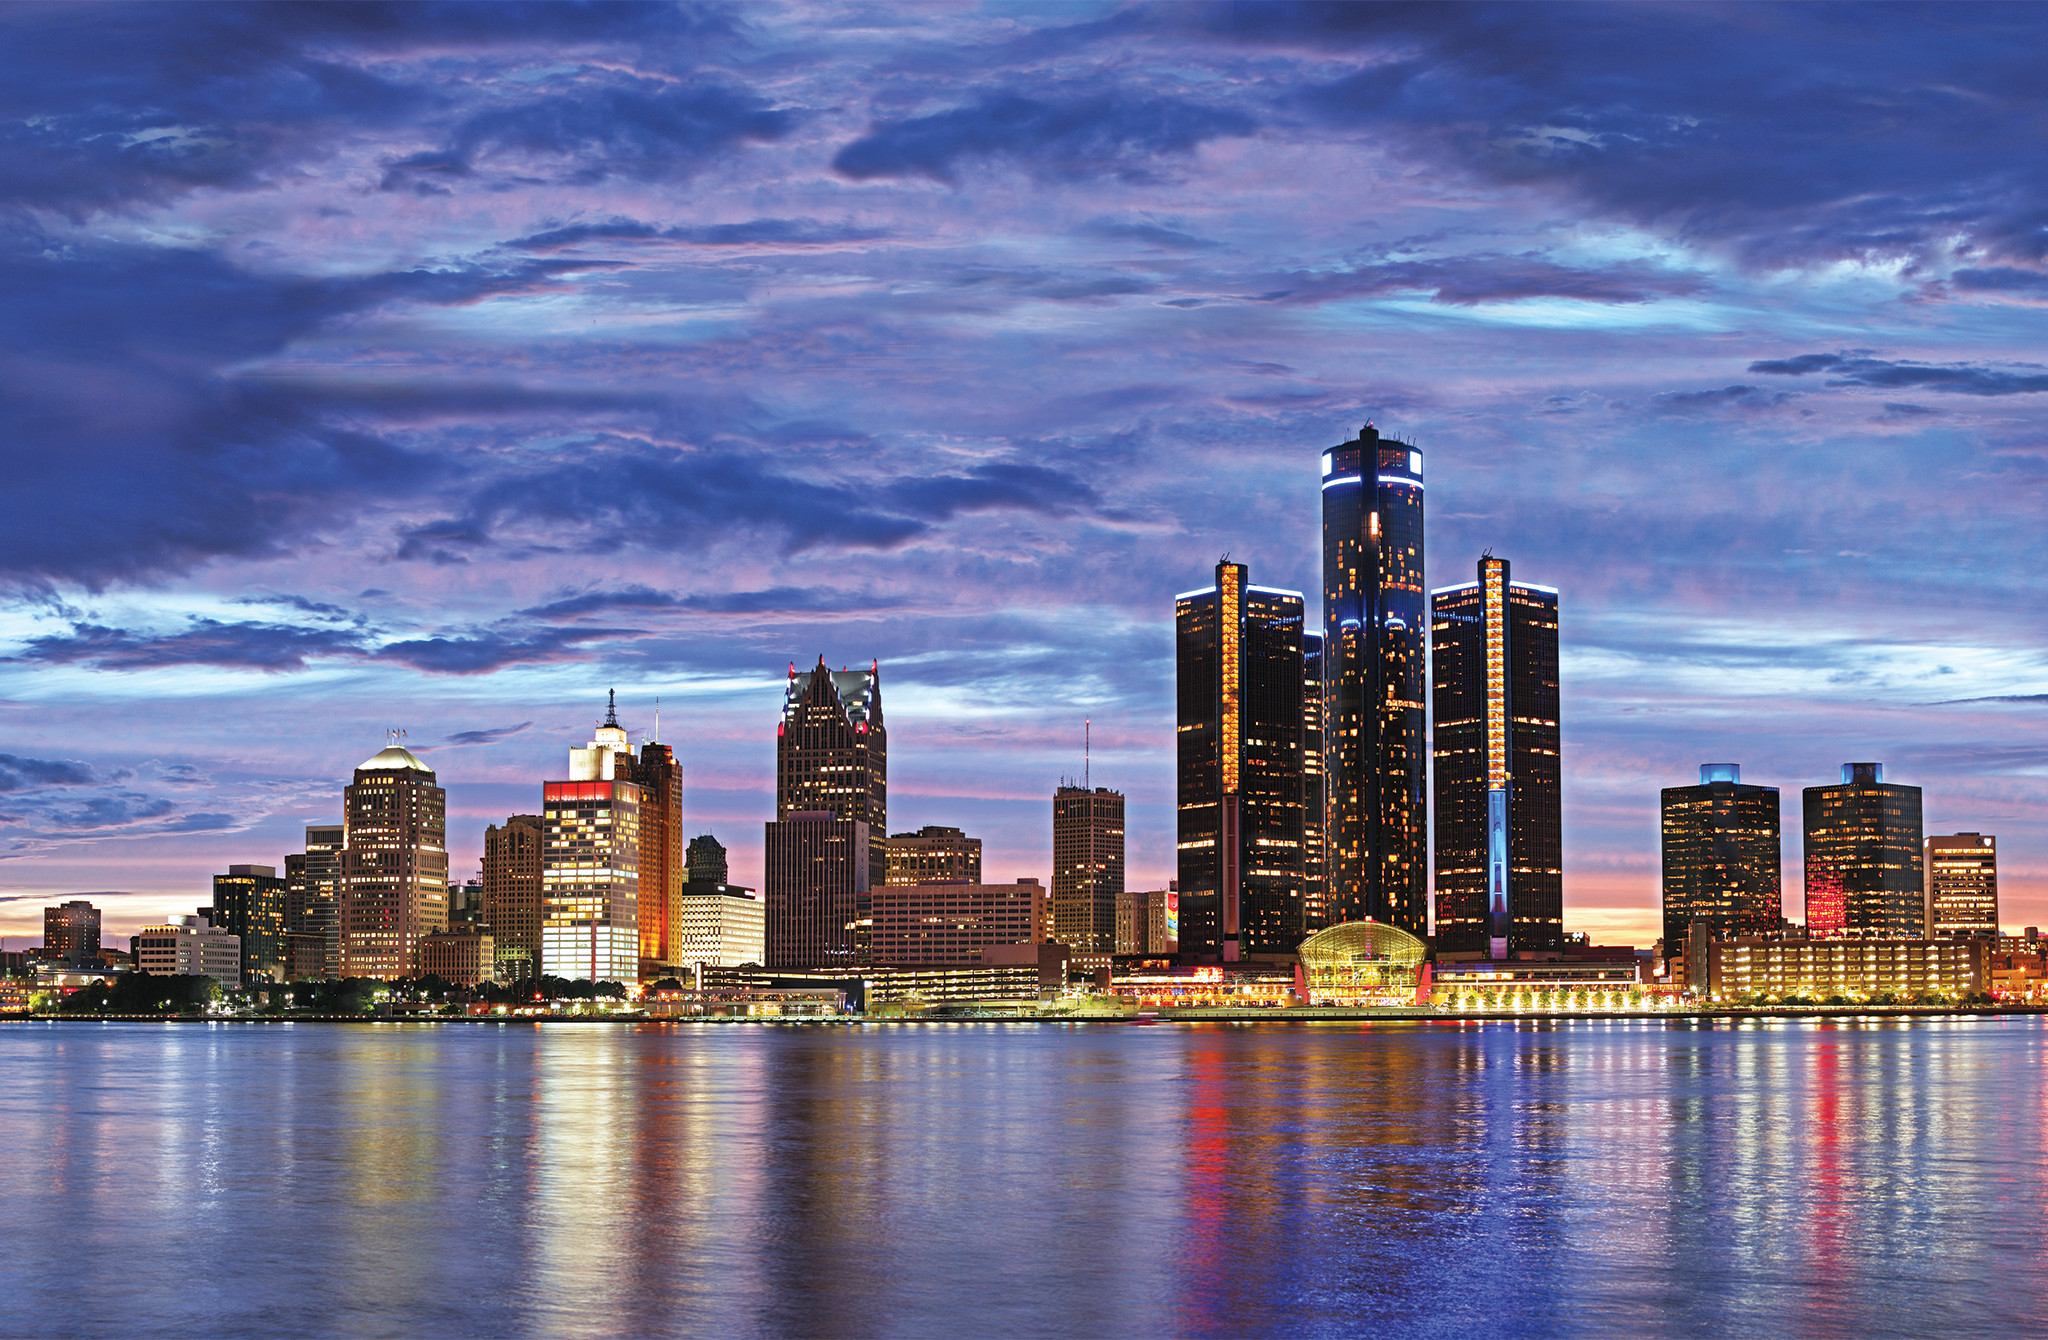 Black And White Feature Wall Wallpaper Detroit Skyline Wallpaper 183 ①